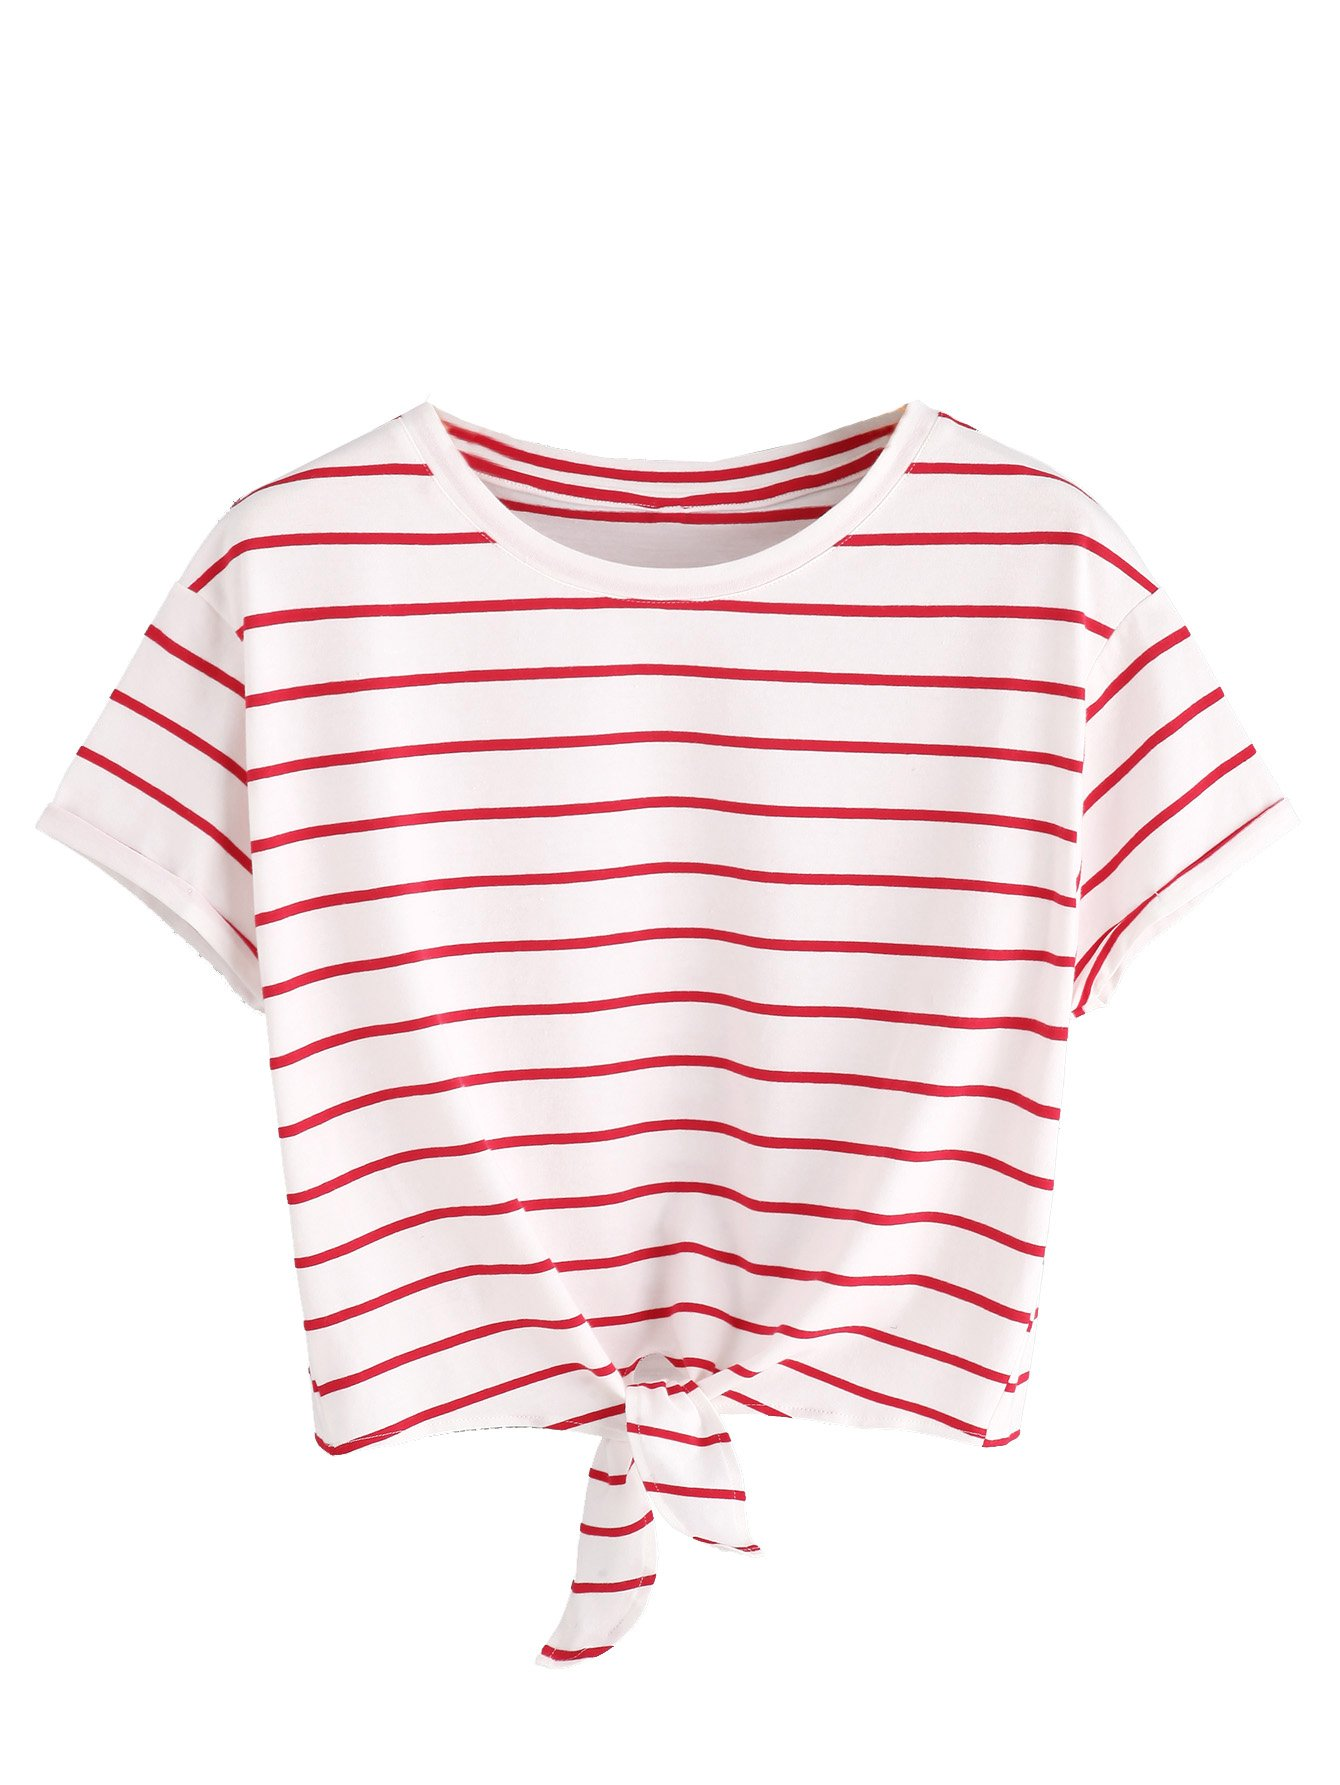 03b24a8a0b8 Galleon - ROMWE Women's Knot Front Long Sleeve Striped Crop Top Tee T-shirt,  White & Red, Large(US 8-10)